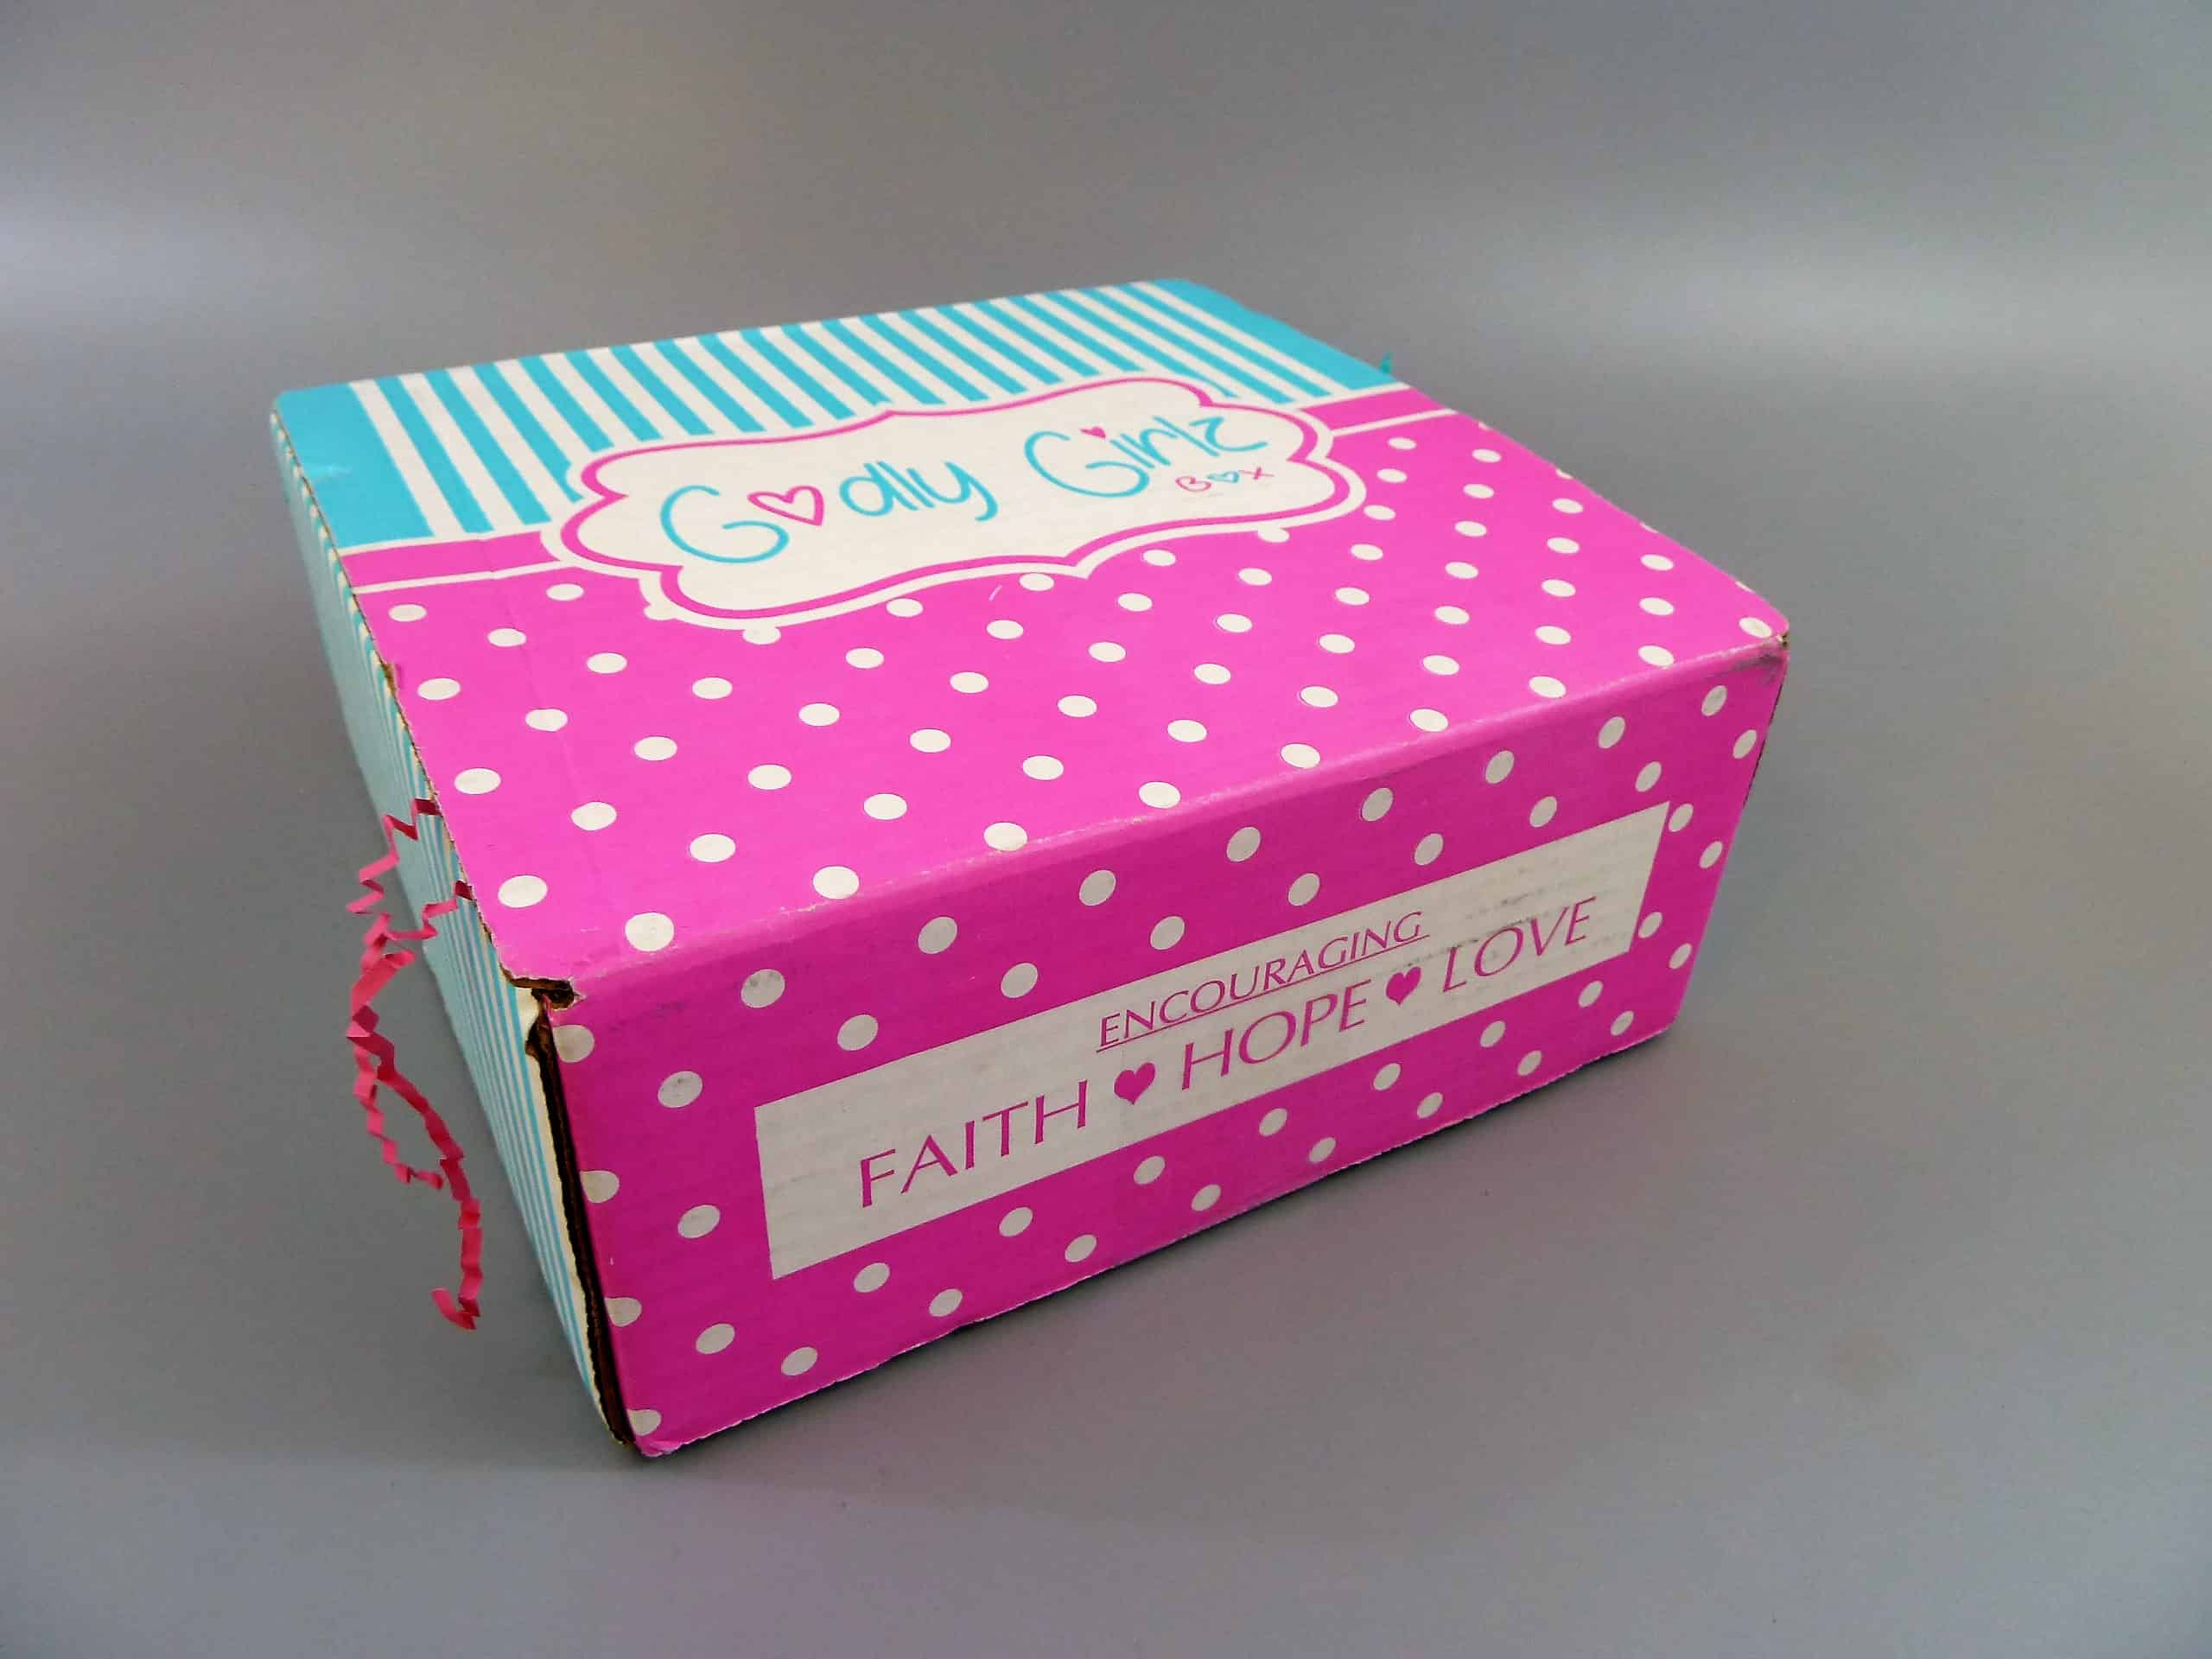 Godly Girlz Box Winter 2018 Subscription Box Review + Coupon